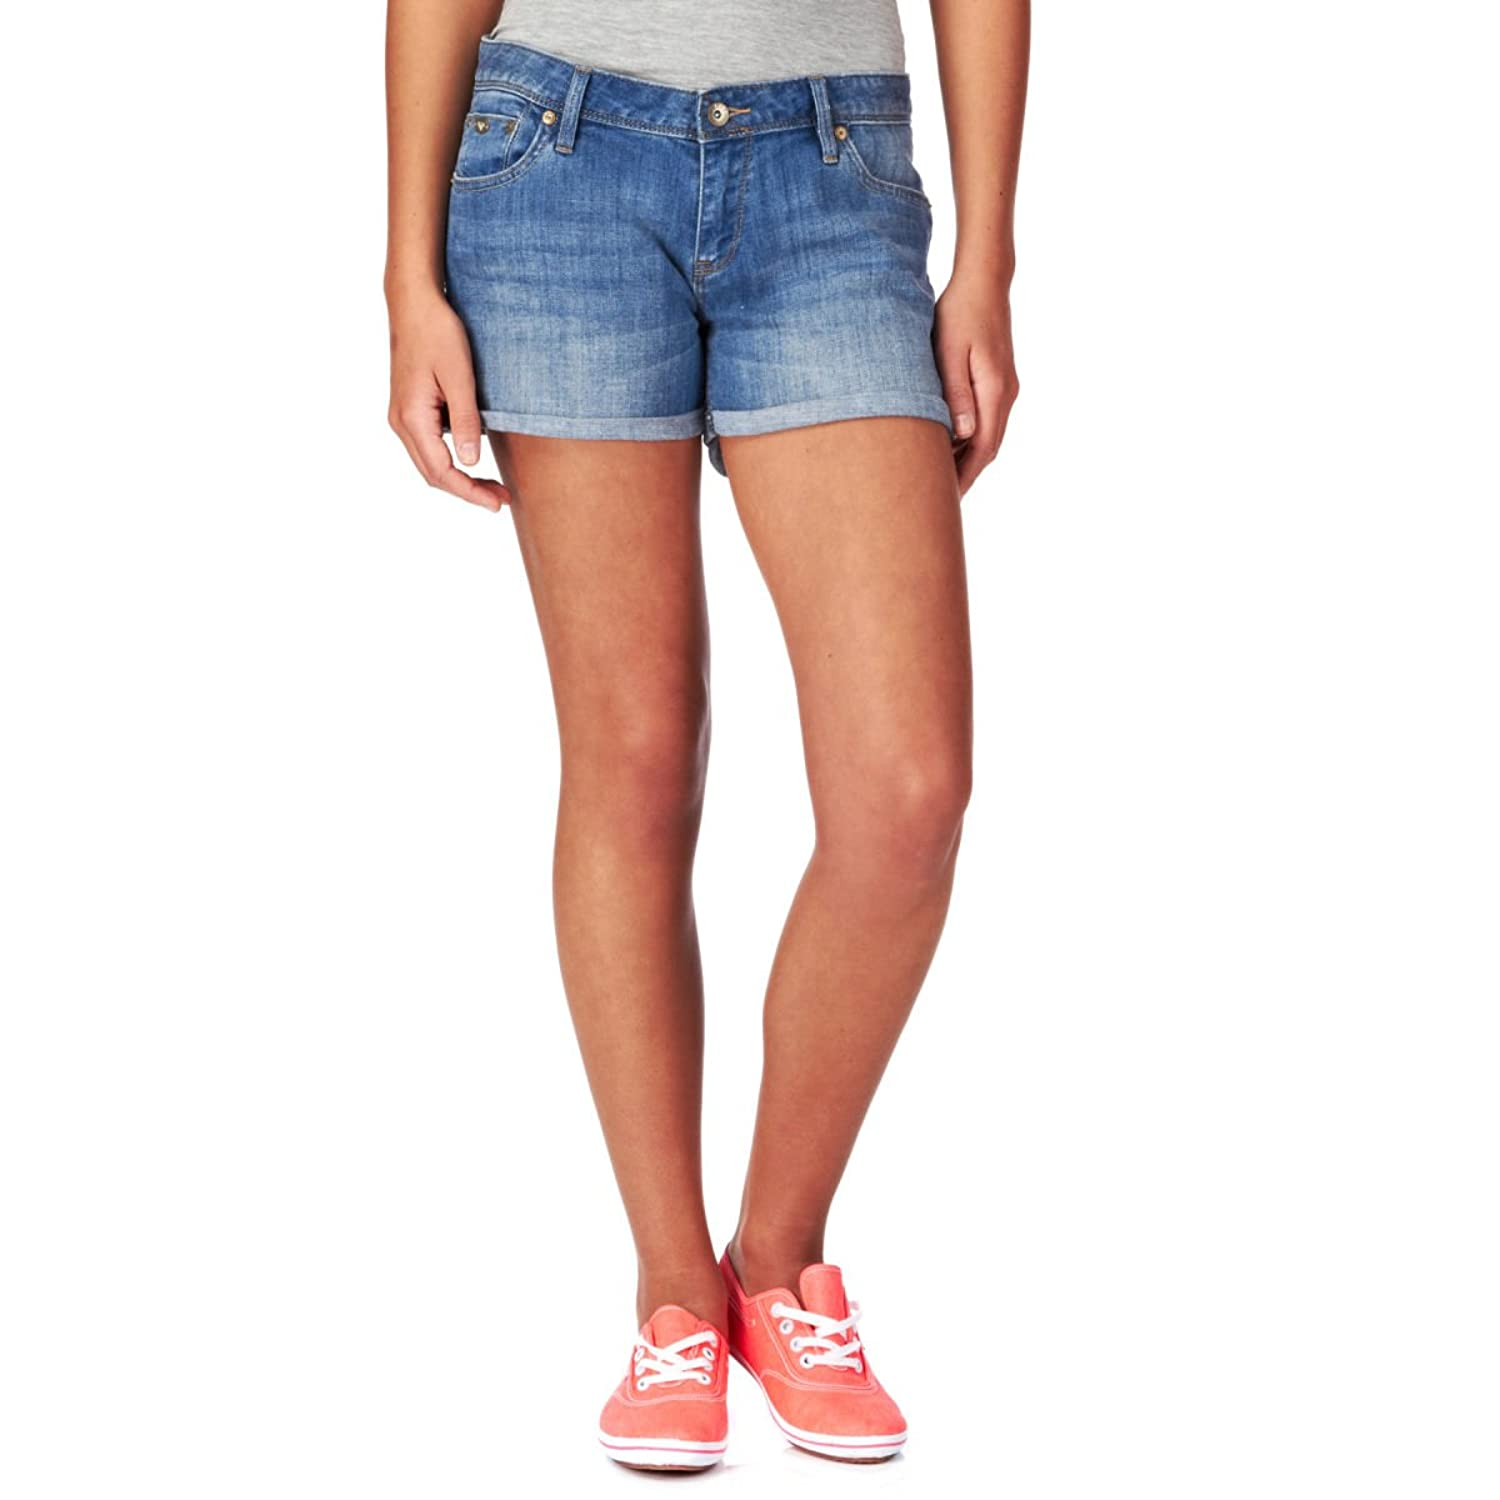 Damen Shorts Roxy Loopy Medium Light Blue Shorts